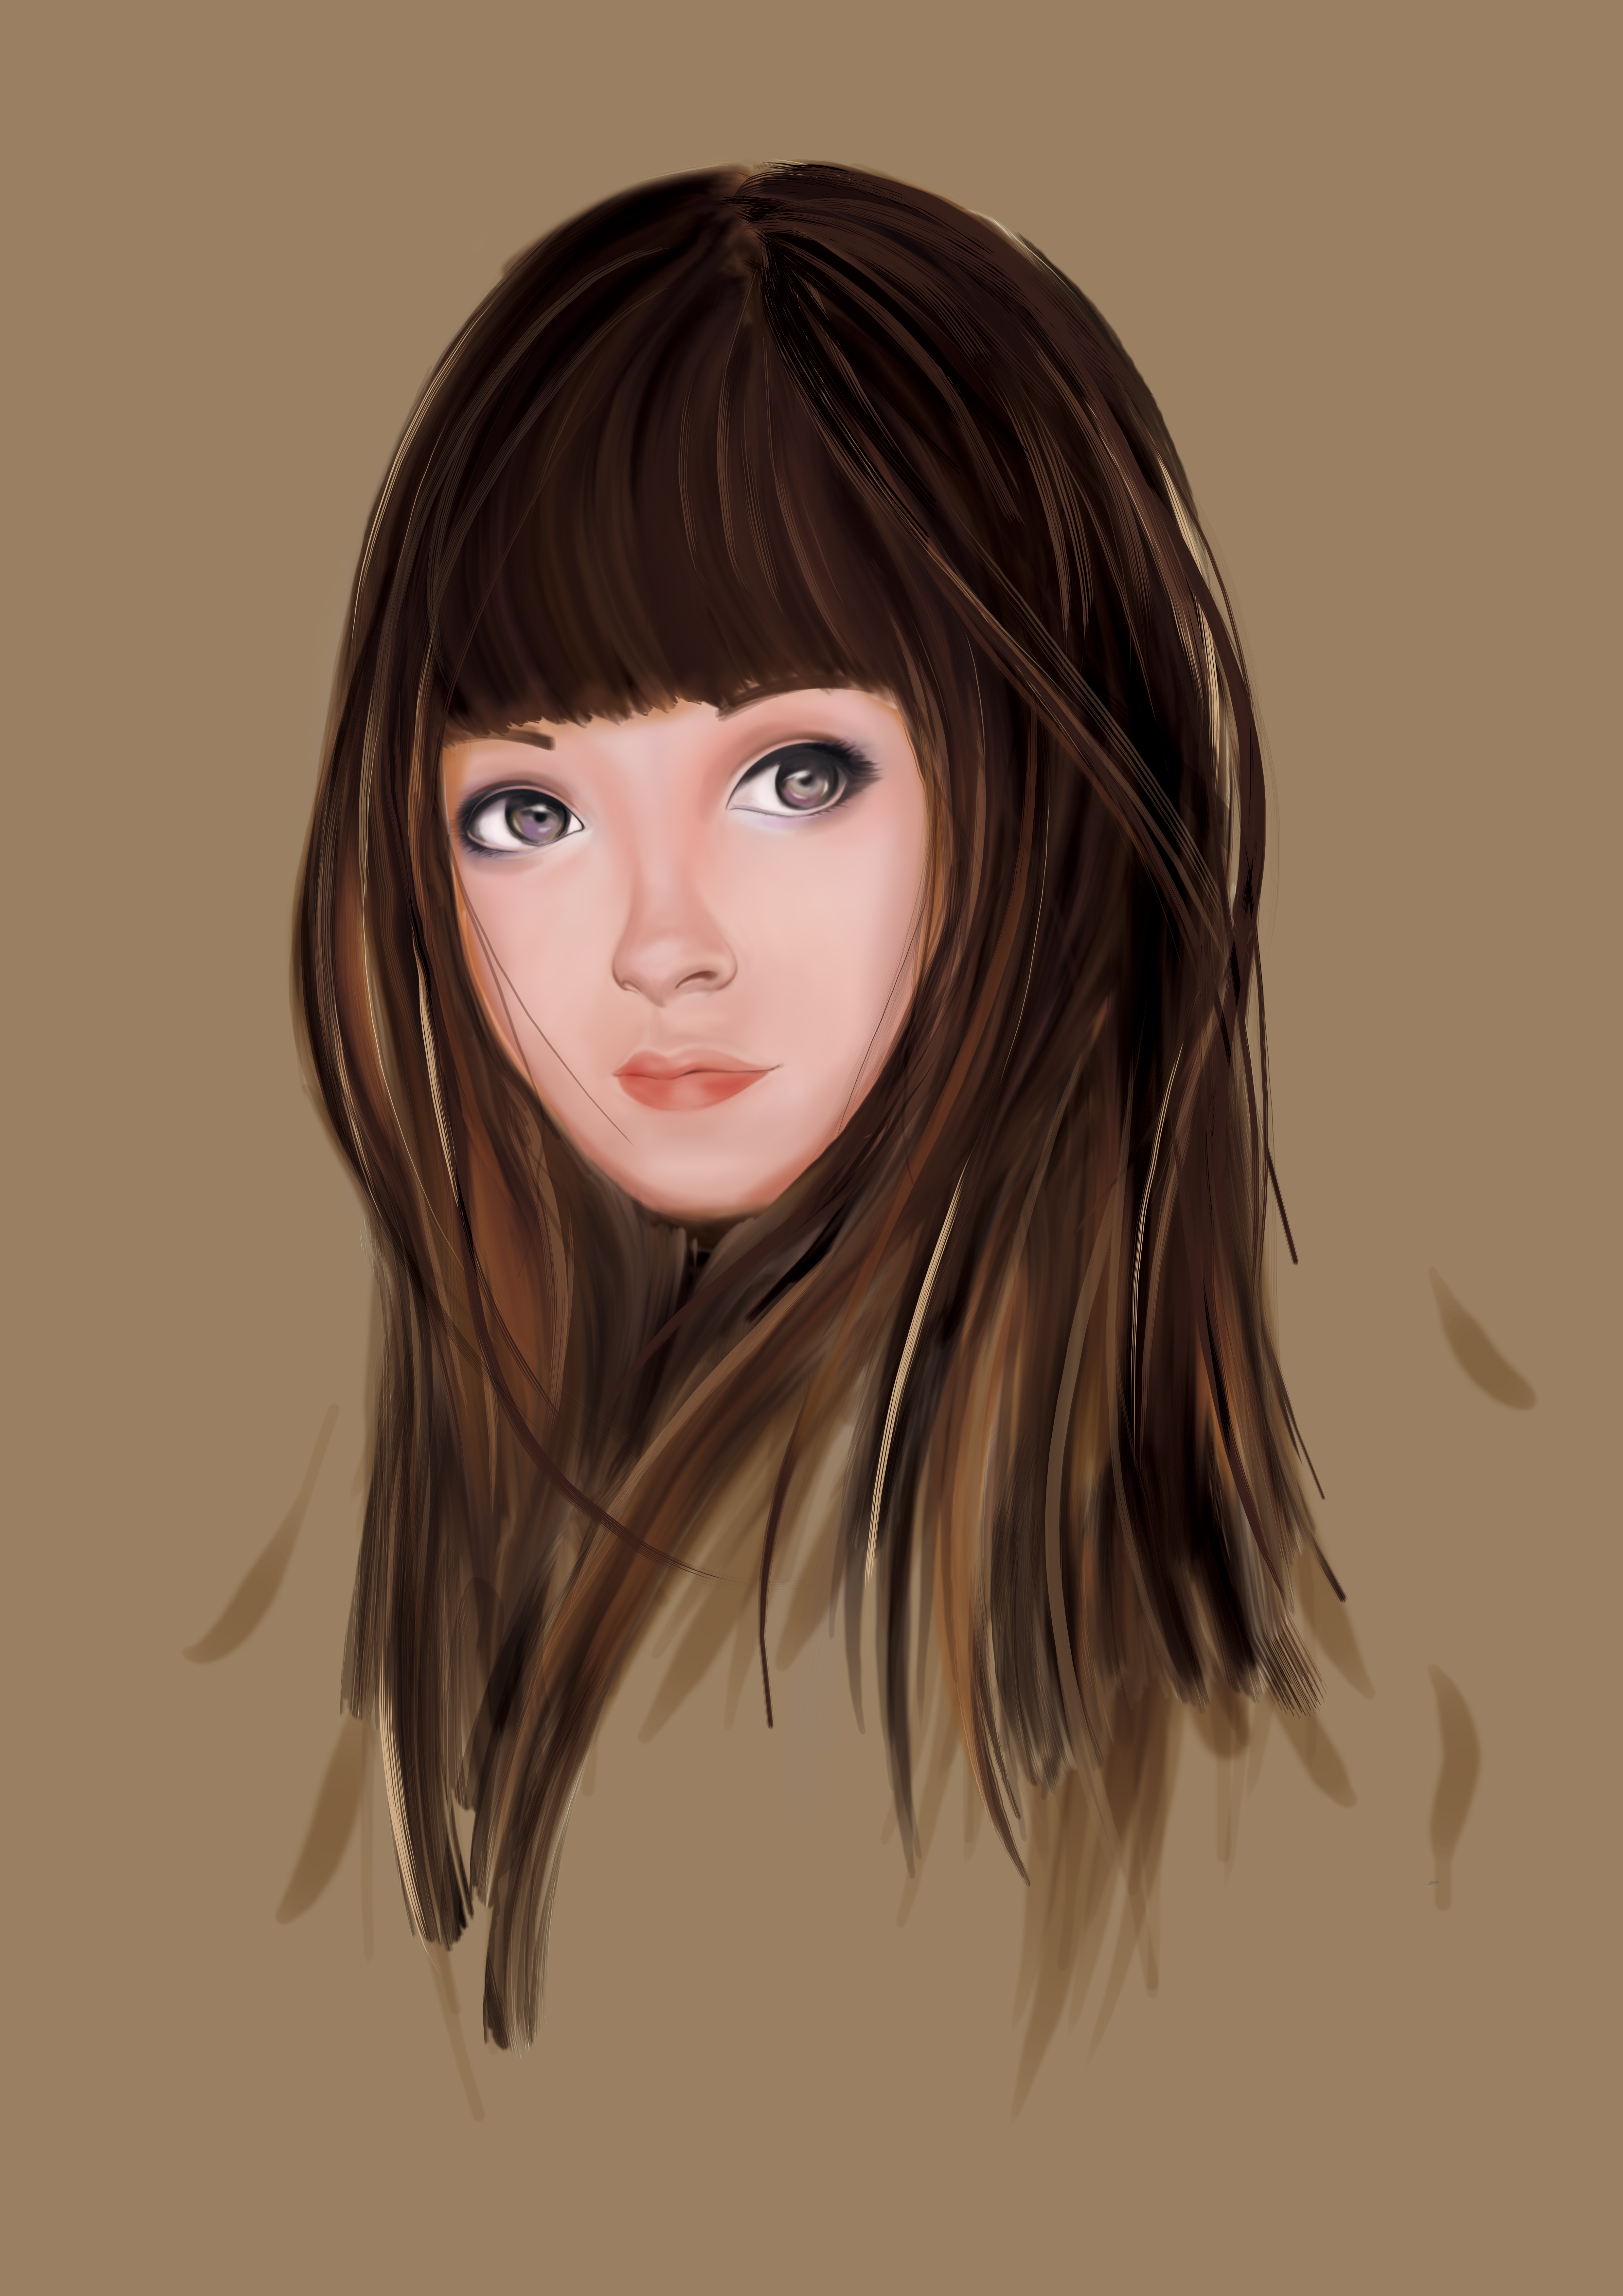 Photoshop CS6 - 女孩子